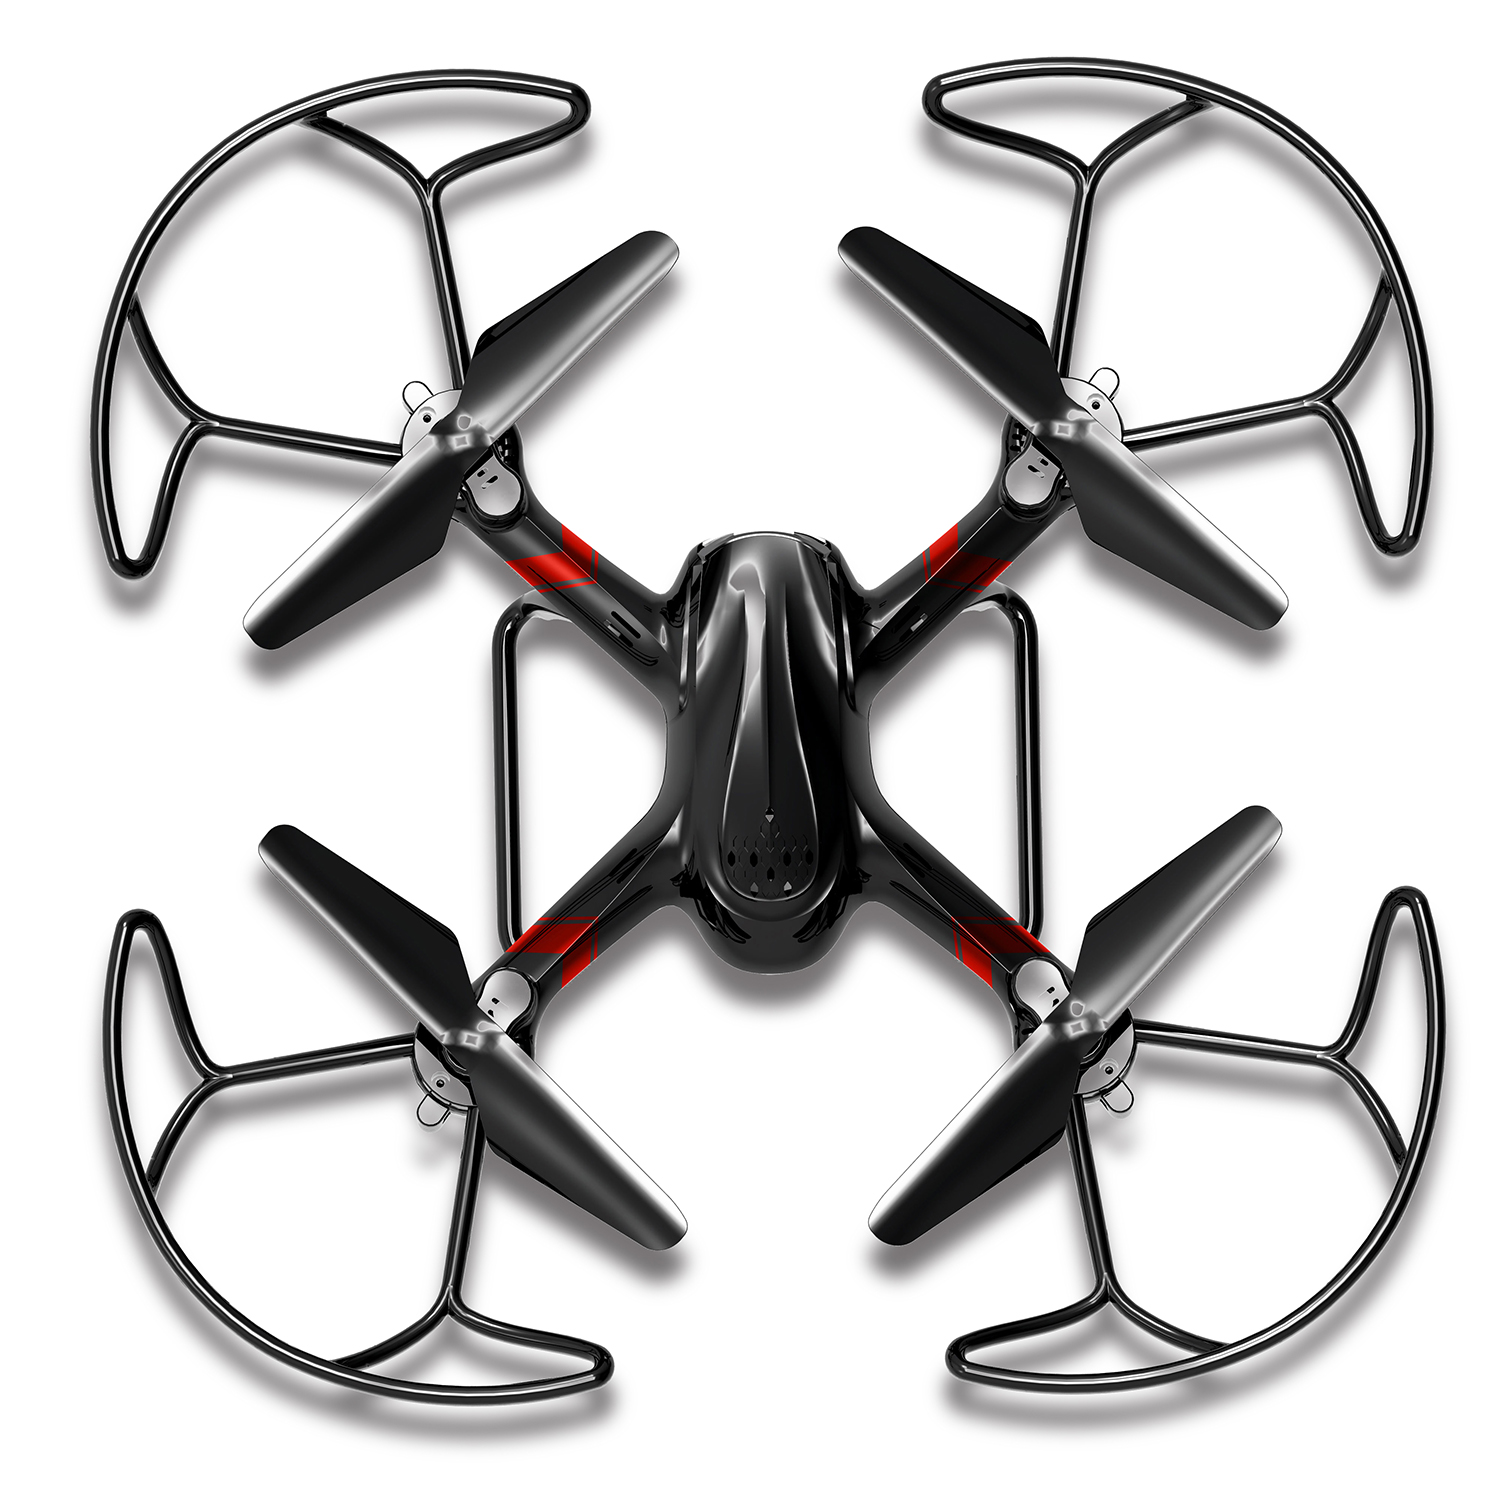 Alta Quadcopter CamPro RC Drone 6 Axis Gyro with 3 Batteries and Remote Control by ALTA